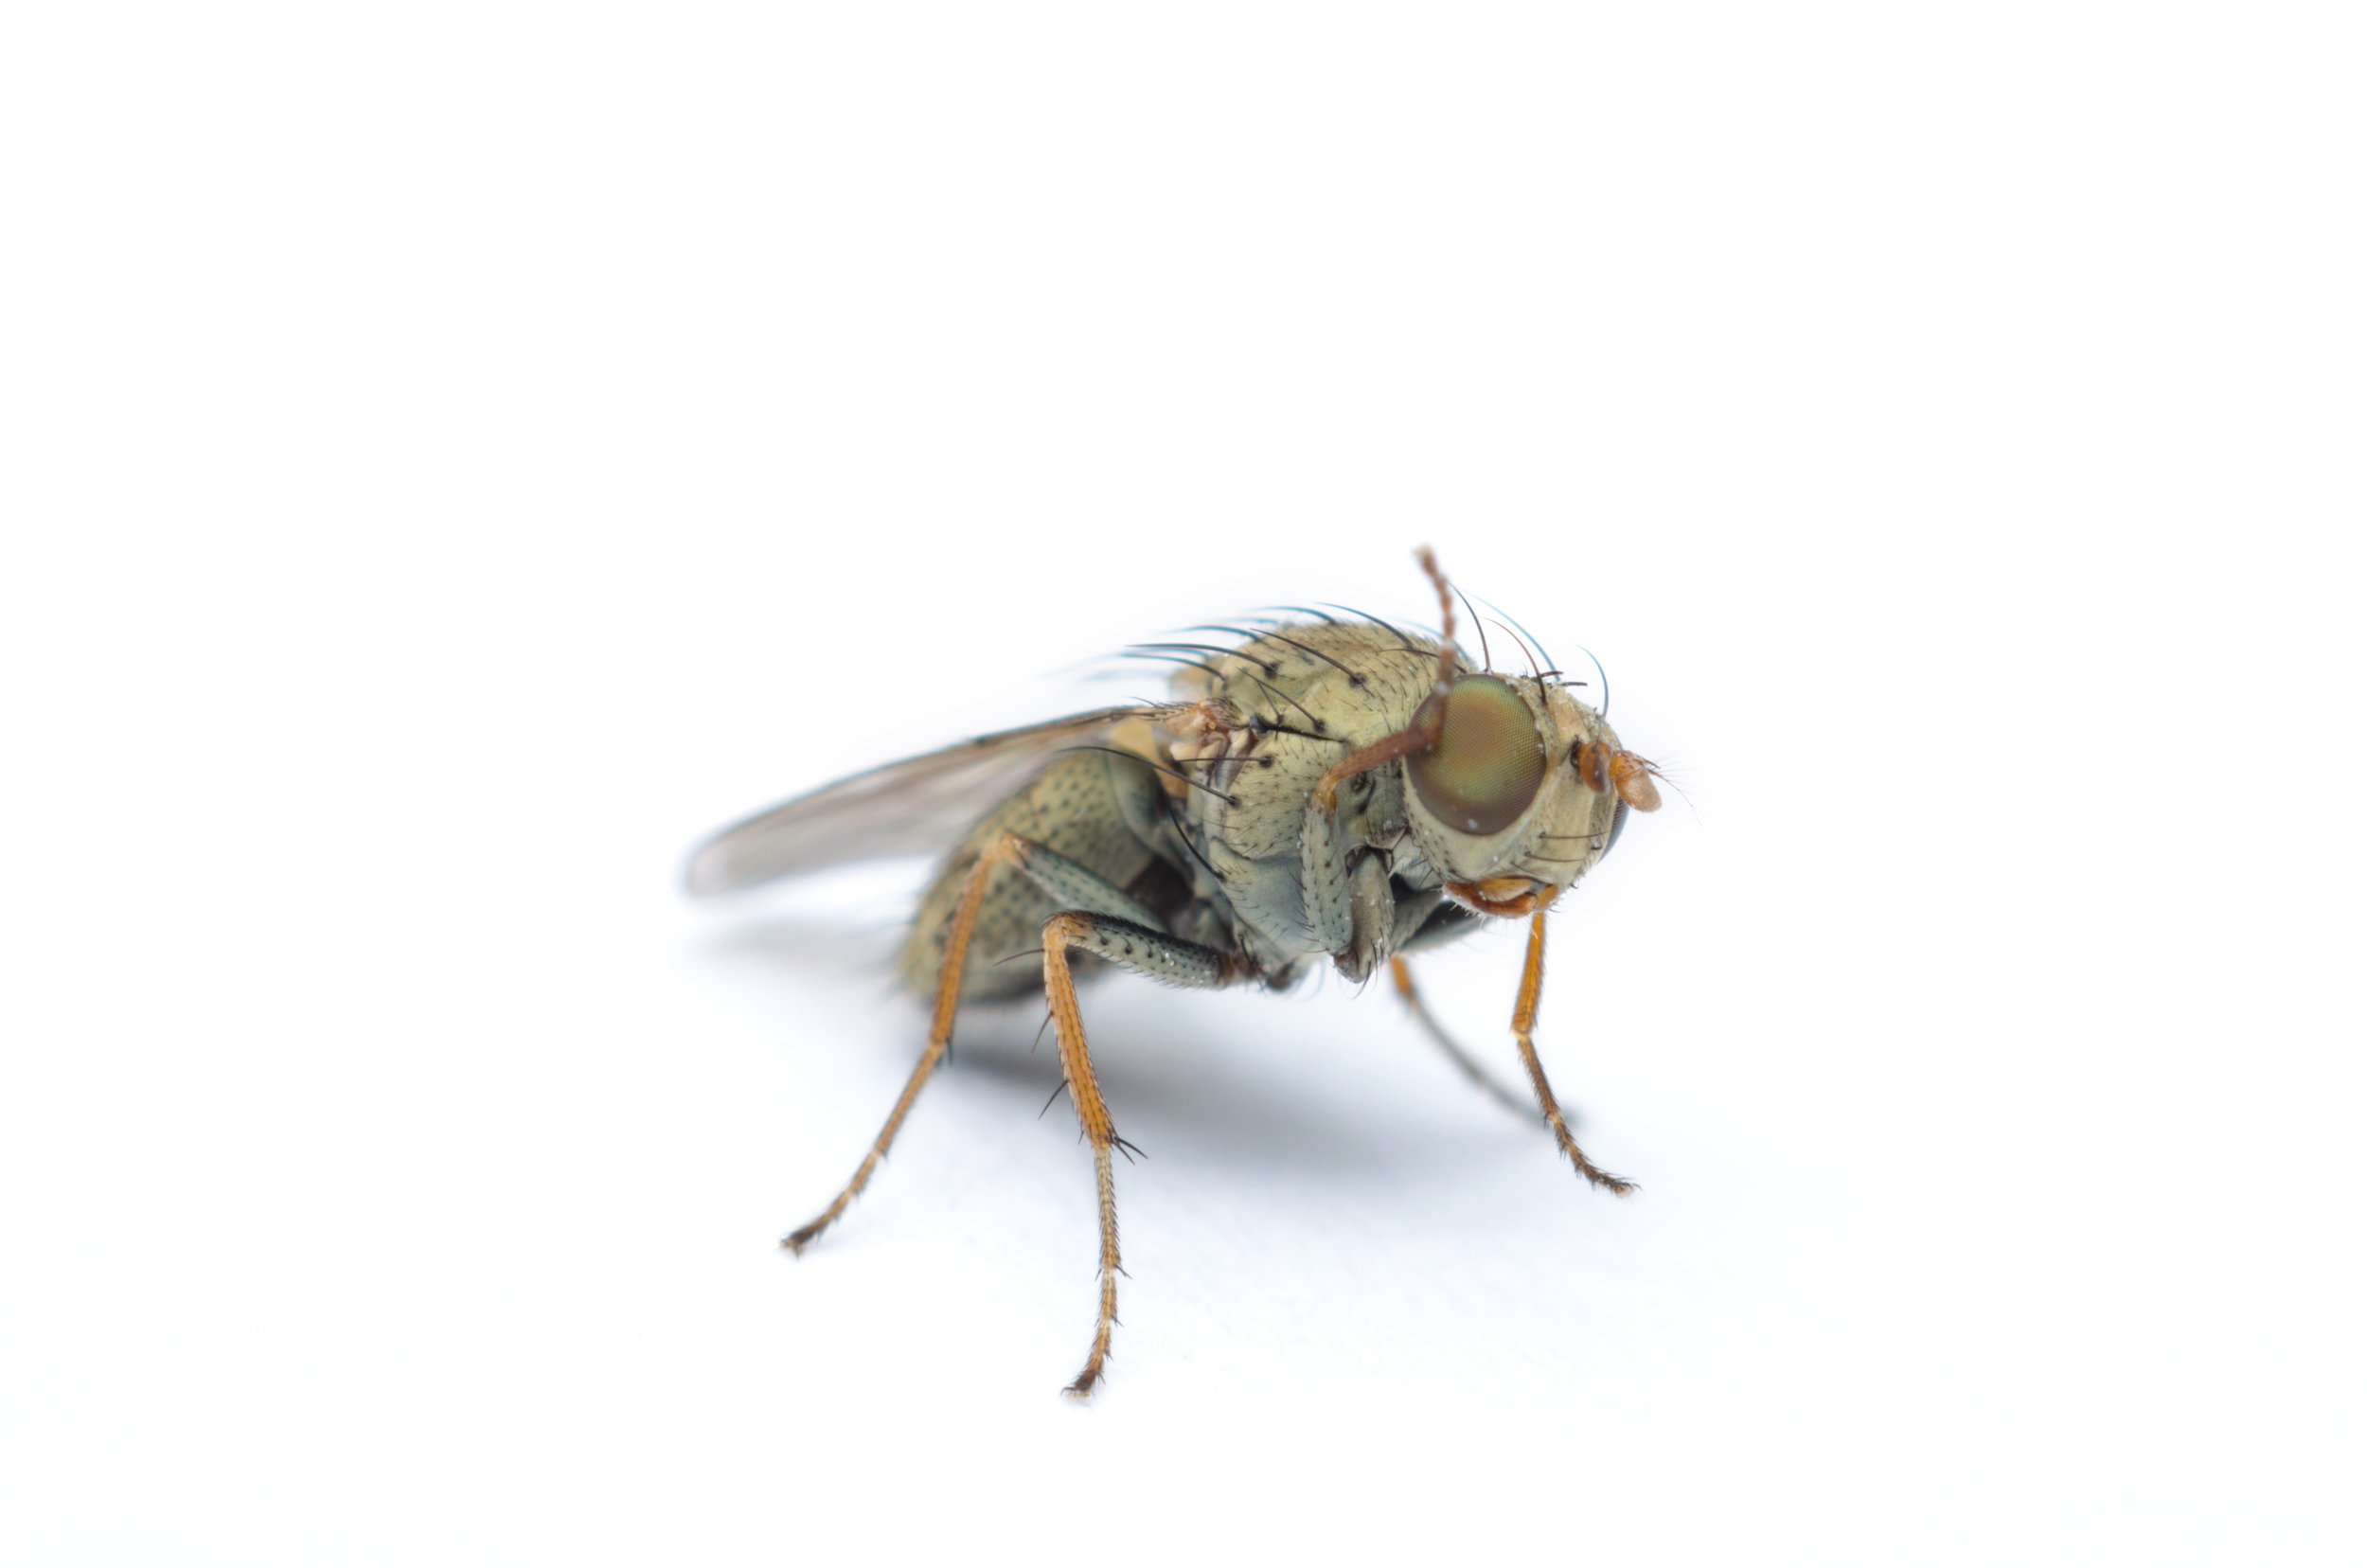 One example of the risk - only a couple millimeters in length and much smaller than your common house fly, certain fruit flies' eggs and larvae can easily hide unseen inside fruits and vegetables.